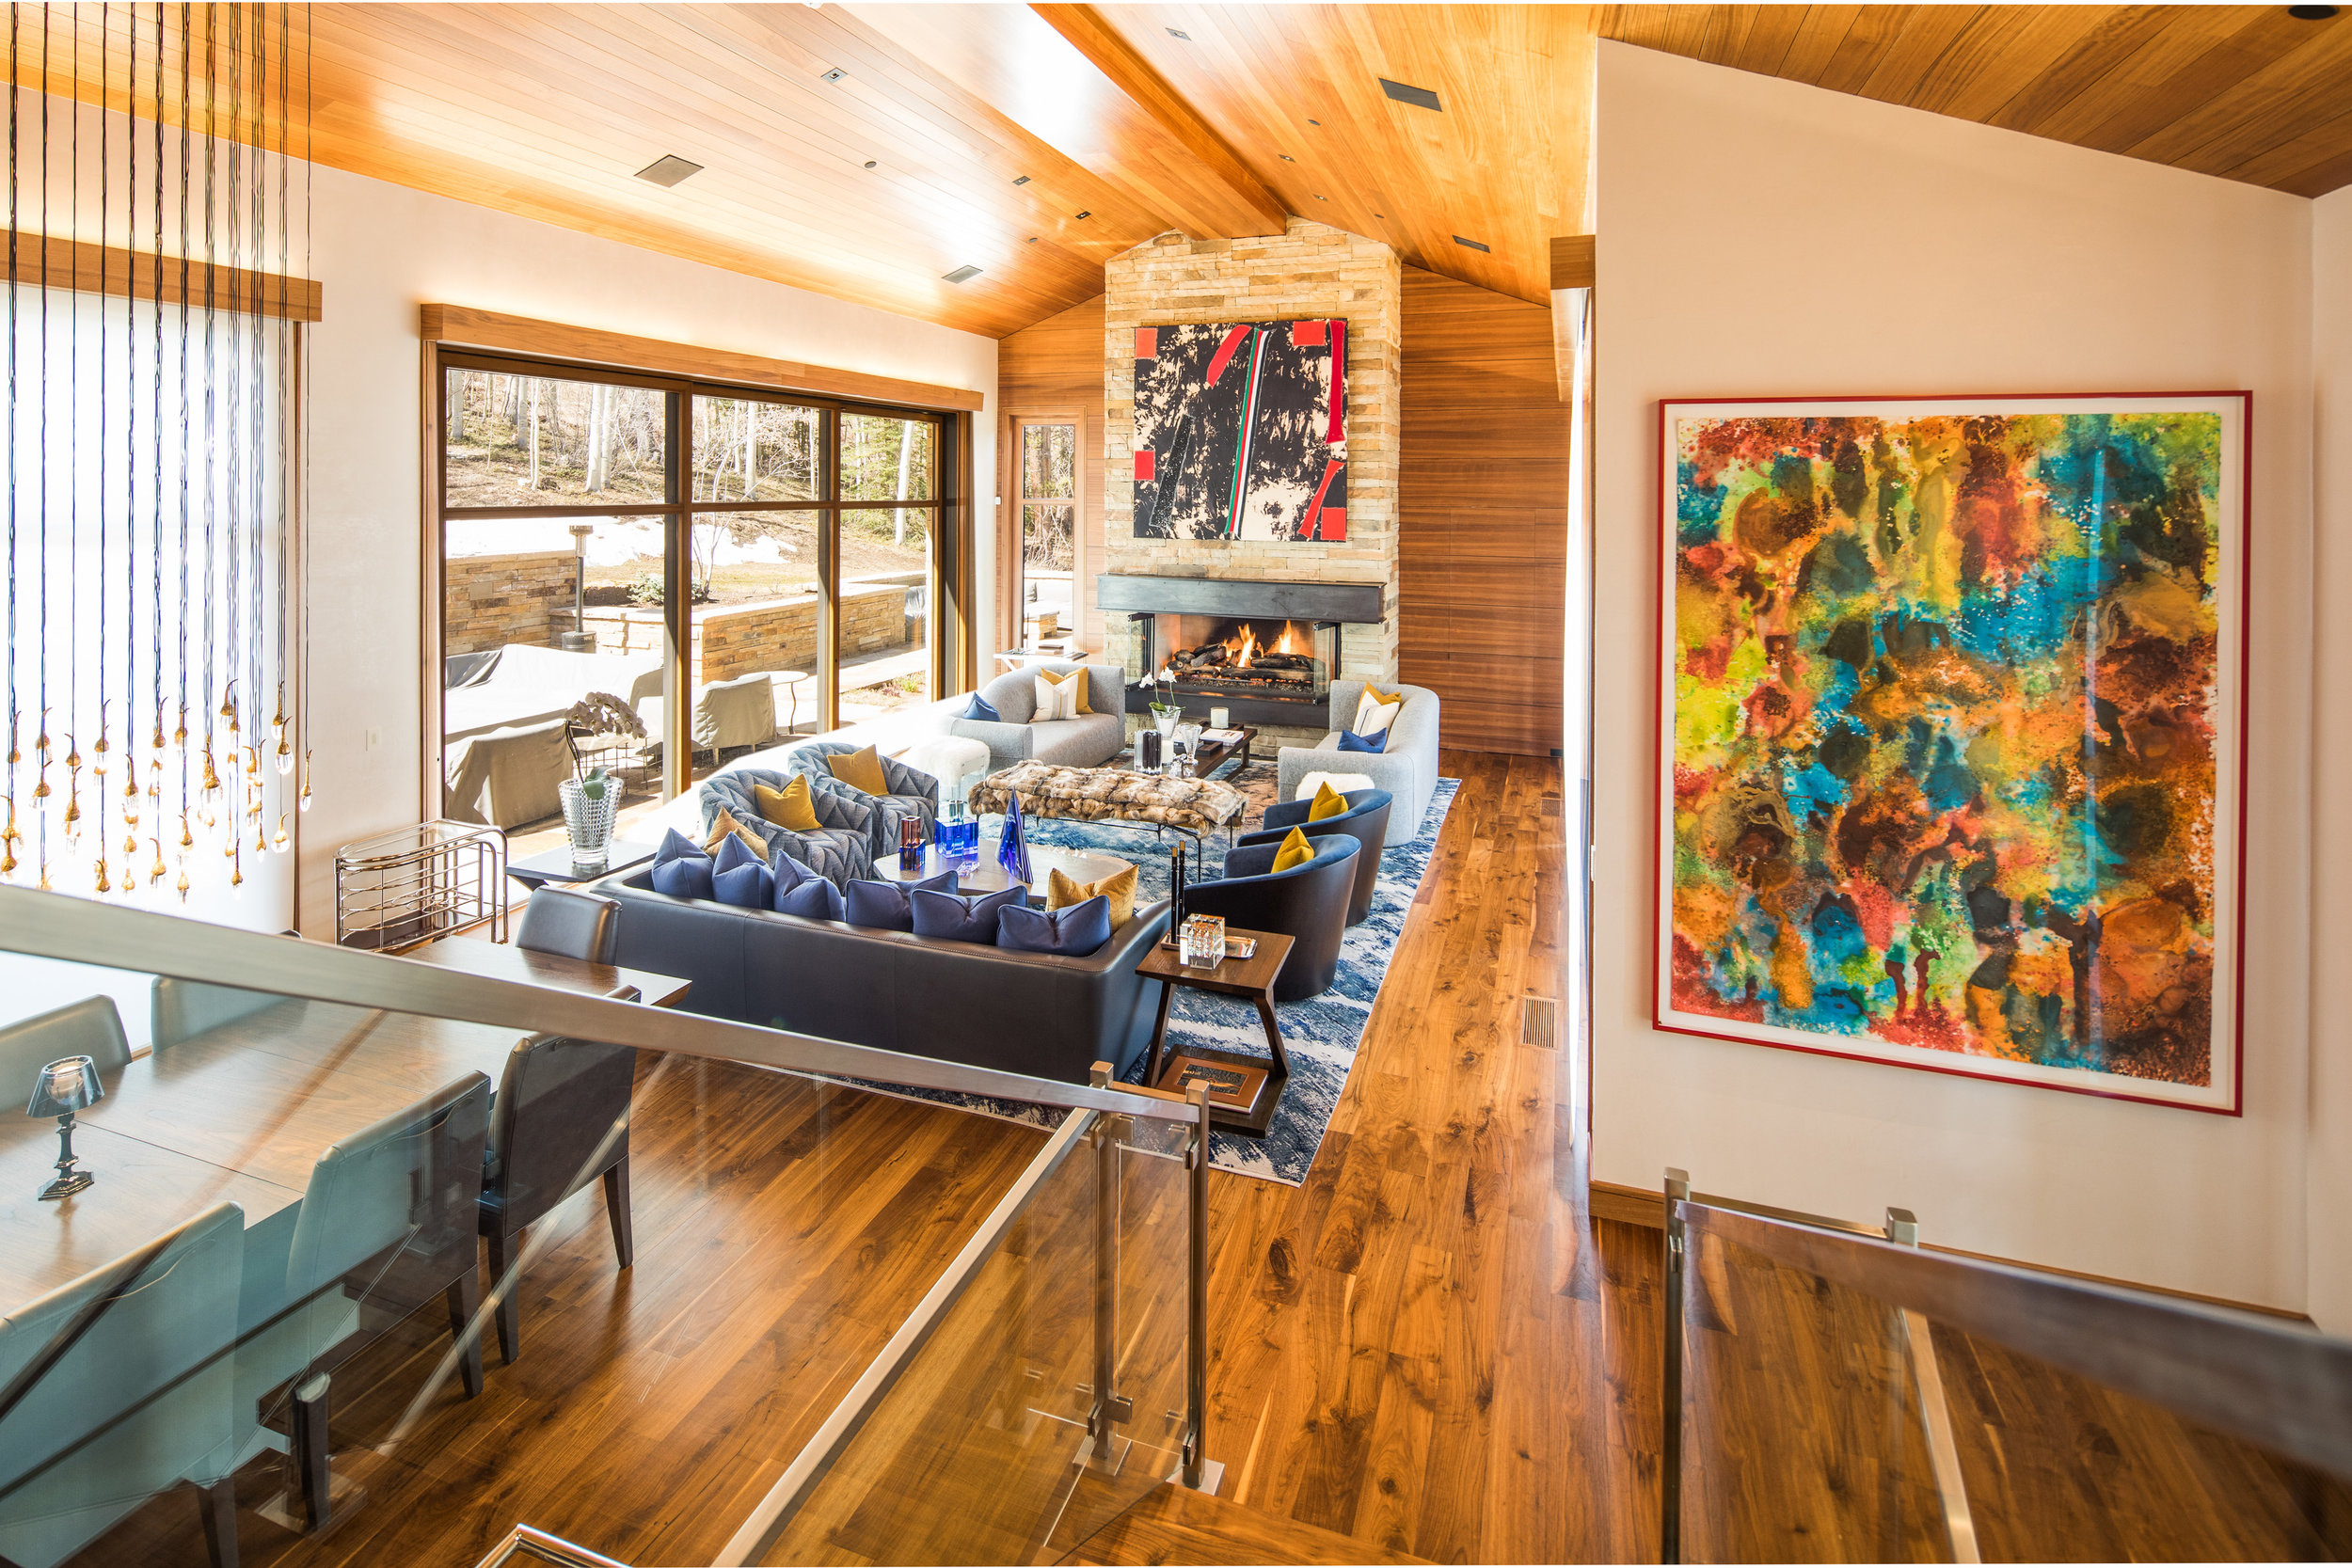 14-Vail-Real-Estate-Photographer-Toni-Axelrod.jpg